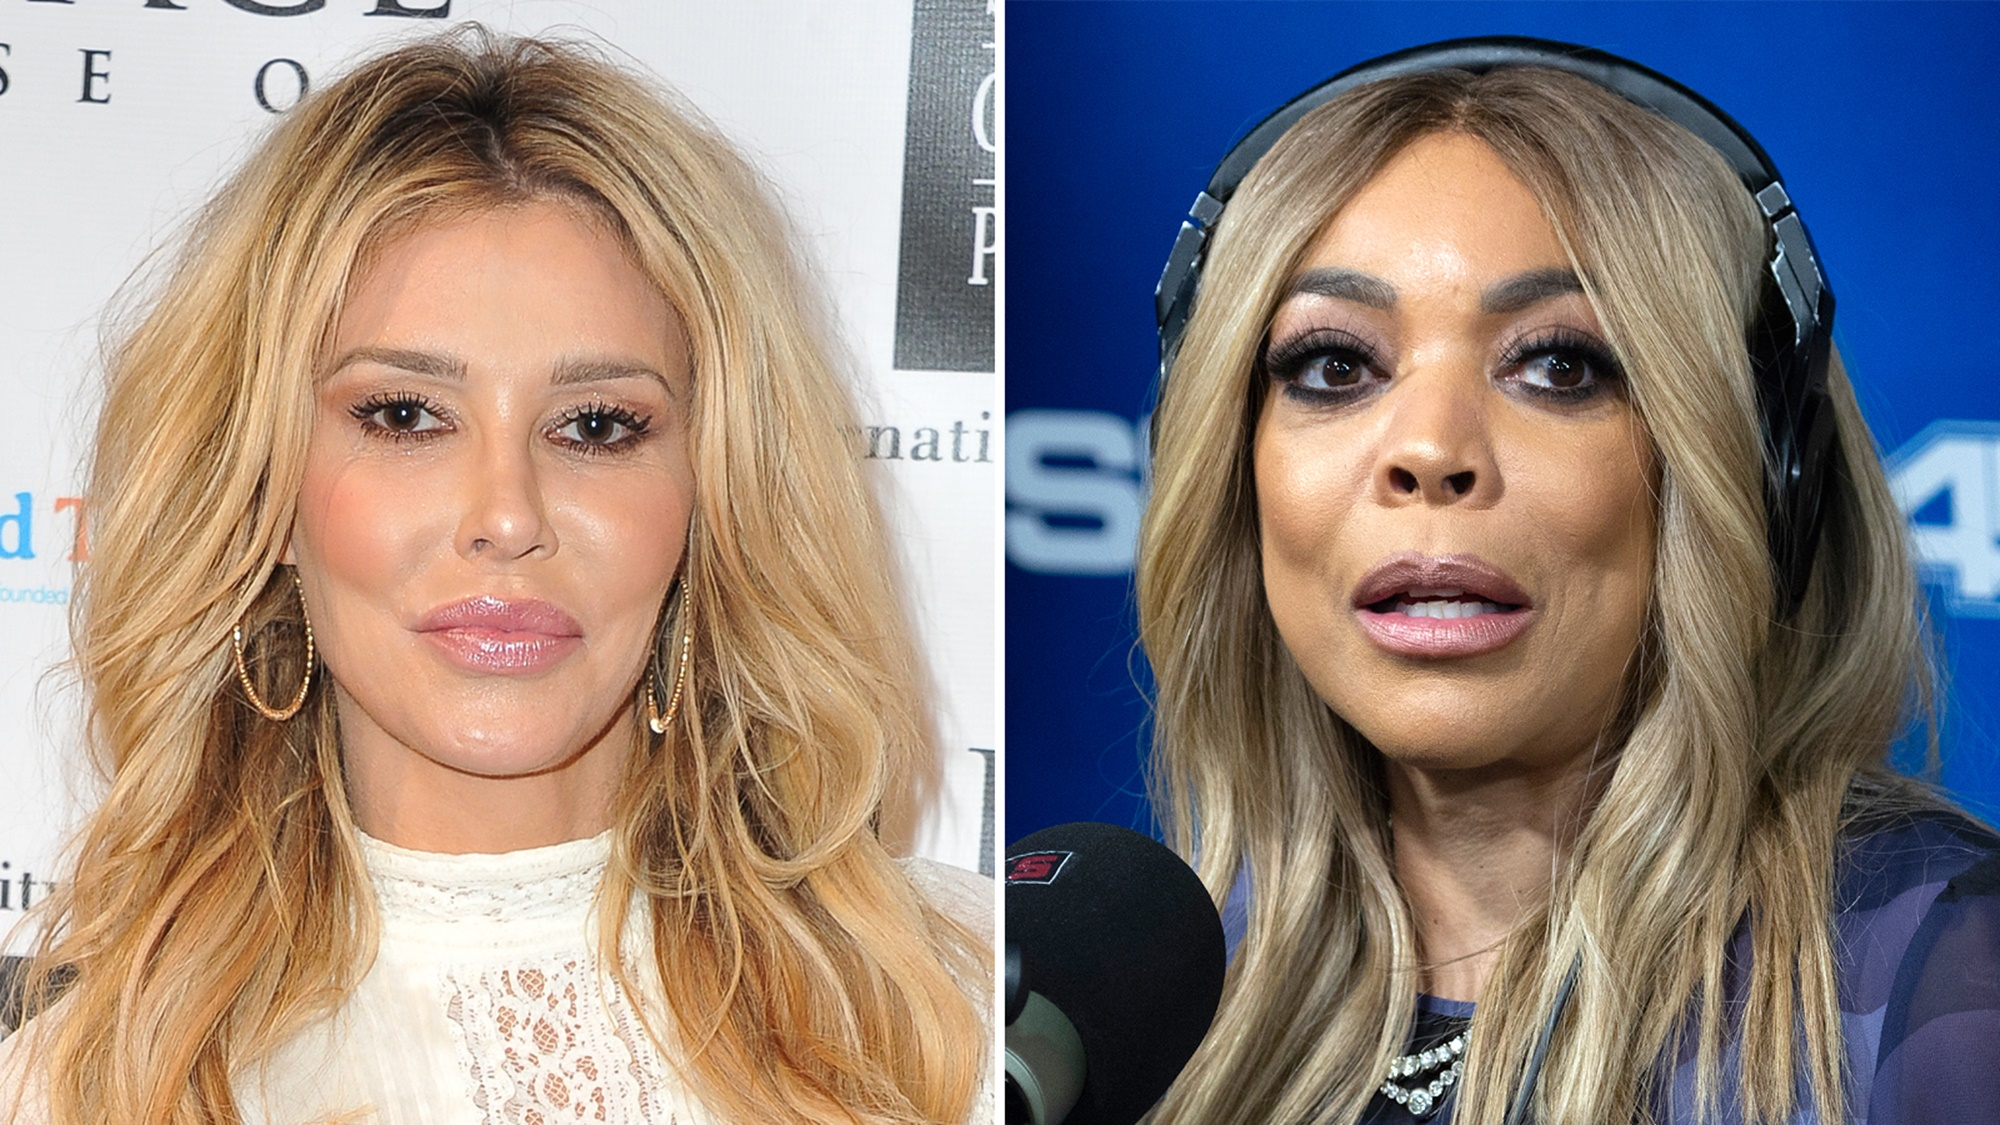 brandi-glanville-suspected-problems-around-wendy-williams-for-some-time